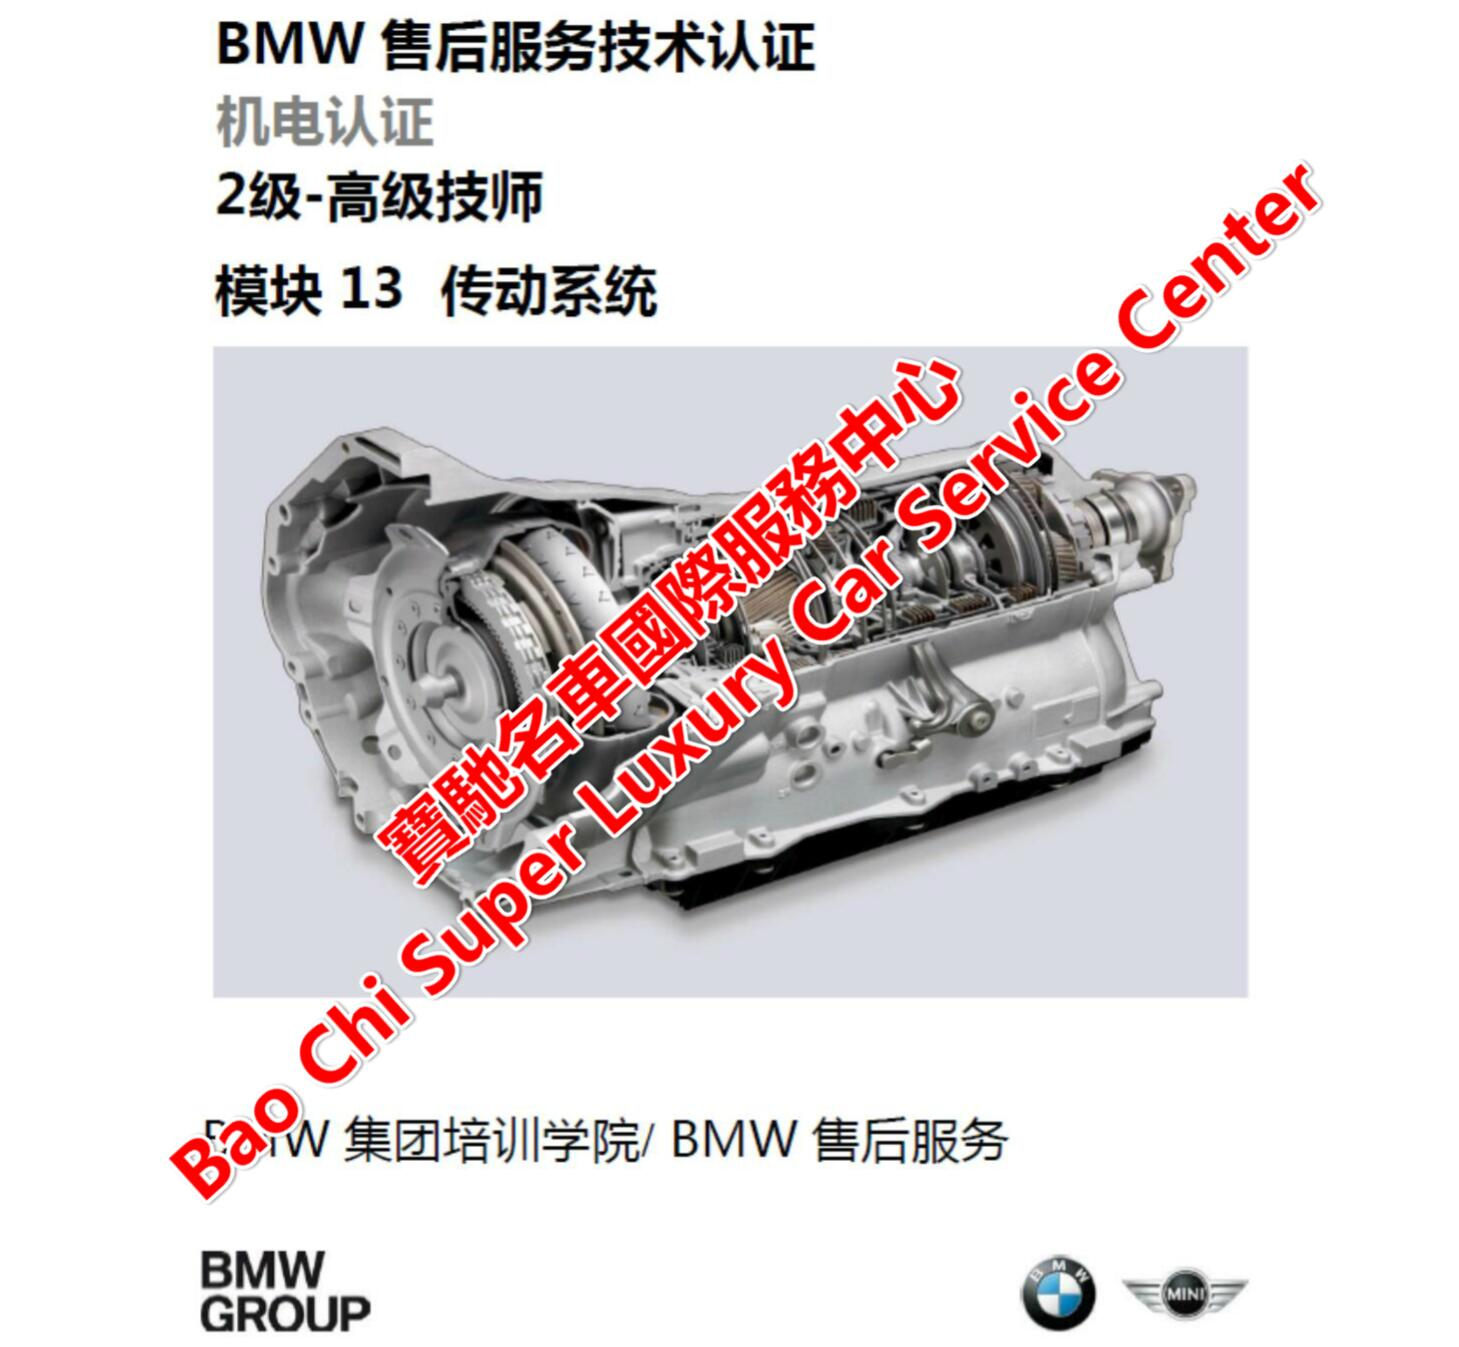 2019 2005 Full Set Bmw Technical Training Manual And Sip